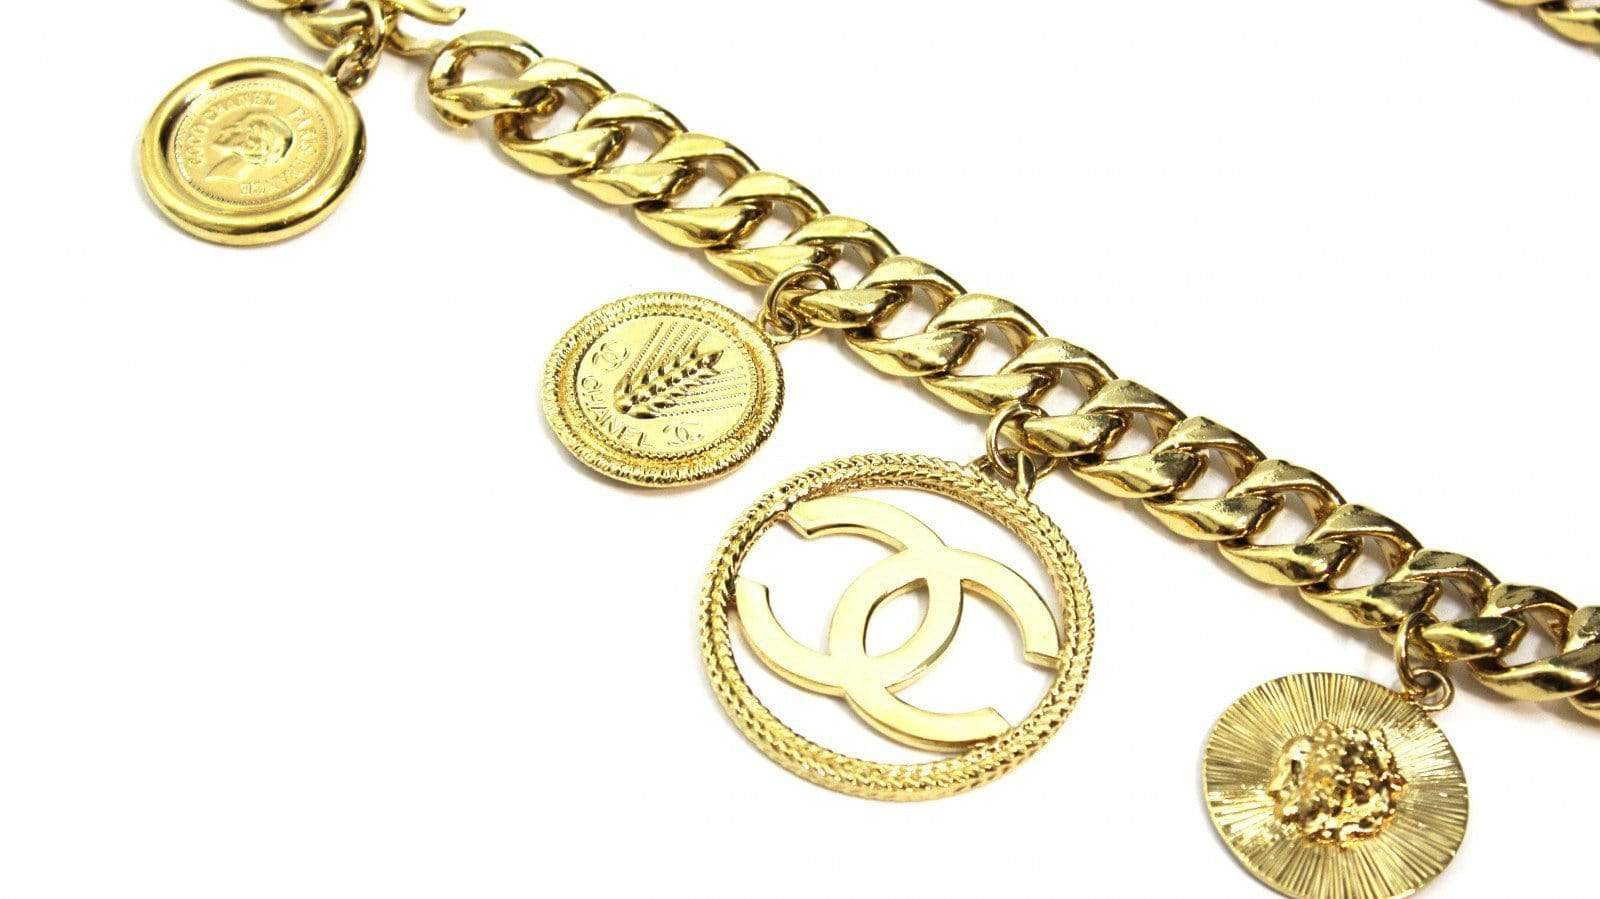 Vintage Heavy Multi Pendent Chanel Cuban Link Chain RSTKD Vintage